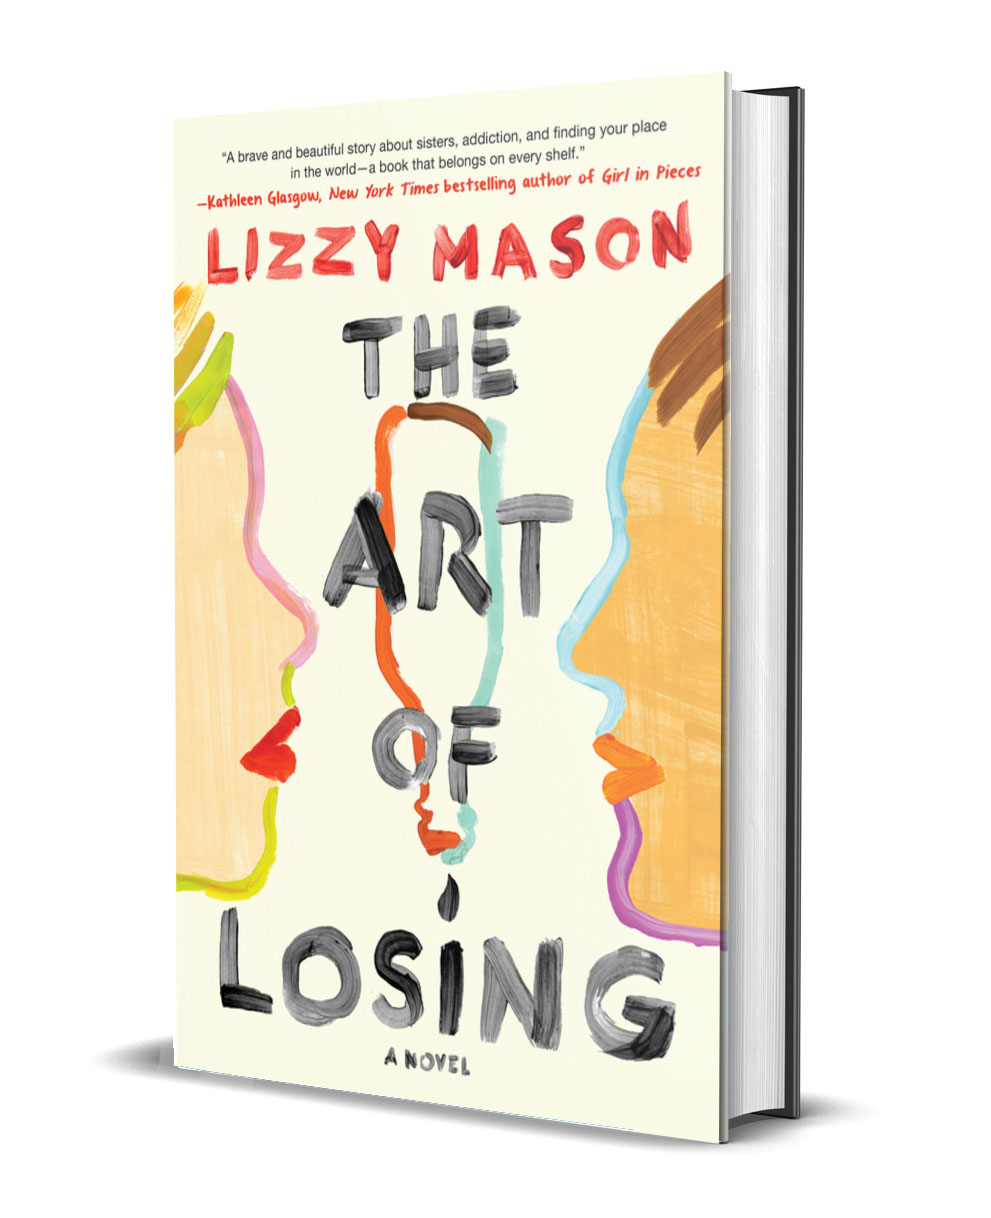 The Art of Losing - One terrible night, 17-year-old Harley Langston's life changes forever. A car accident leaves her younger sister, Audrey, in a coma. Harley's boyfriend, Mike, was at the wheel—drunk at the time, though relatively unscathed. The sickening irony is that Audrey would be fine if Harley hadn't caught her wasted with Mike at a party and abandoned her in a rage. Now Harley is left only with guilt, grief, pain and the undeniable truth that her ex-boyfriend has a drinking problem. So it's a surprise that she finds herself reconnecting with Raf, a neighbor and childhood friend who's recently out of rehab and still wrestling with his own demons. At first Harley doesn't want to get too close to him. But as Audrey awakens from her coma and slowly recovers, Raf starts to show Harley a path forward that she never would have believed possible, one guided by honesty, forgiveness, and redemption.